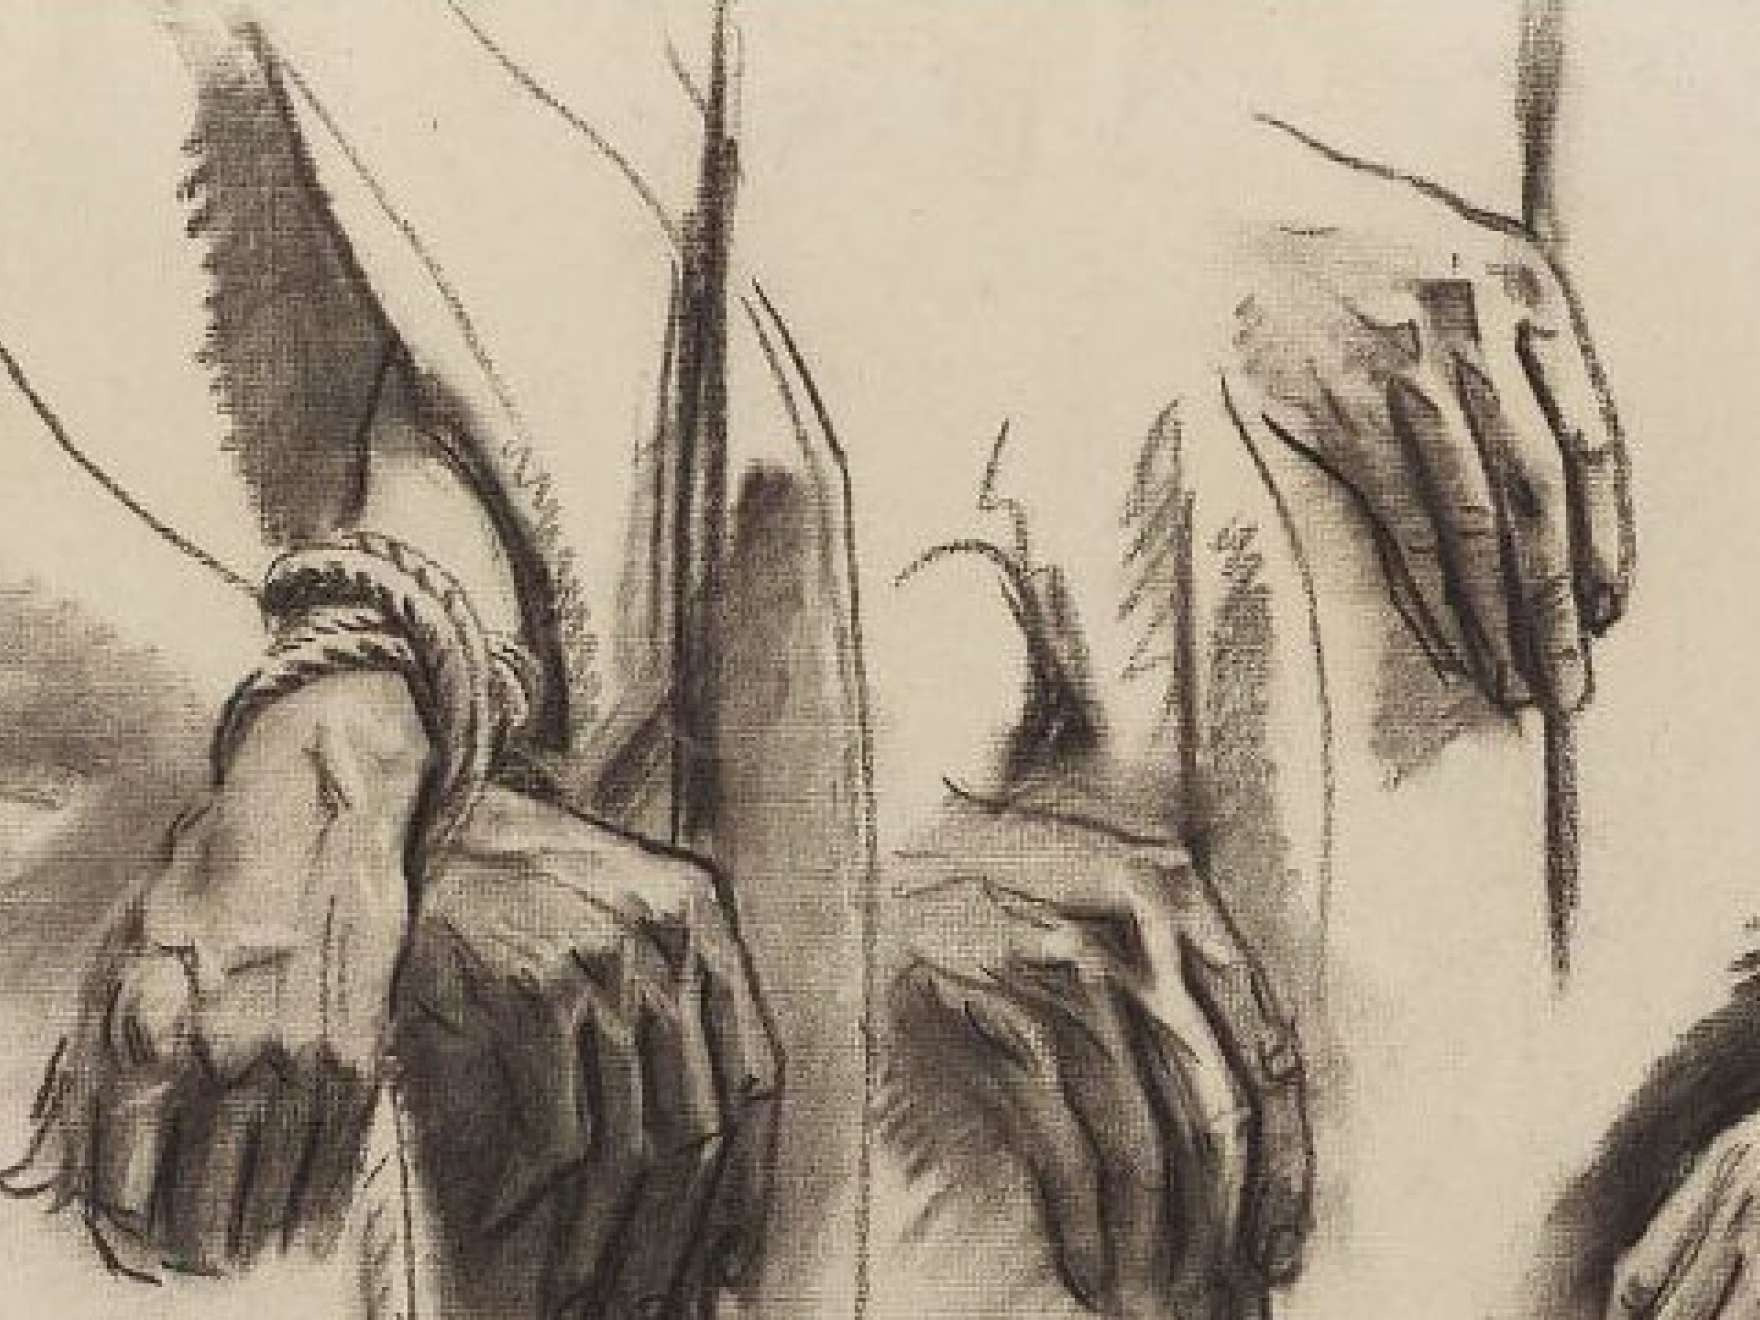 Detail of John Singer Sargent's sketch for the Sorrowful Mysteries, the Crowning with Thorns - Hands - Boston Public Library Murals